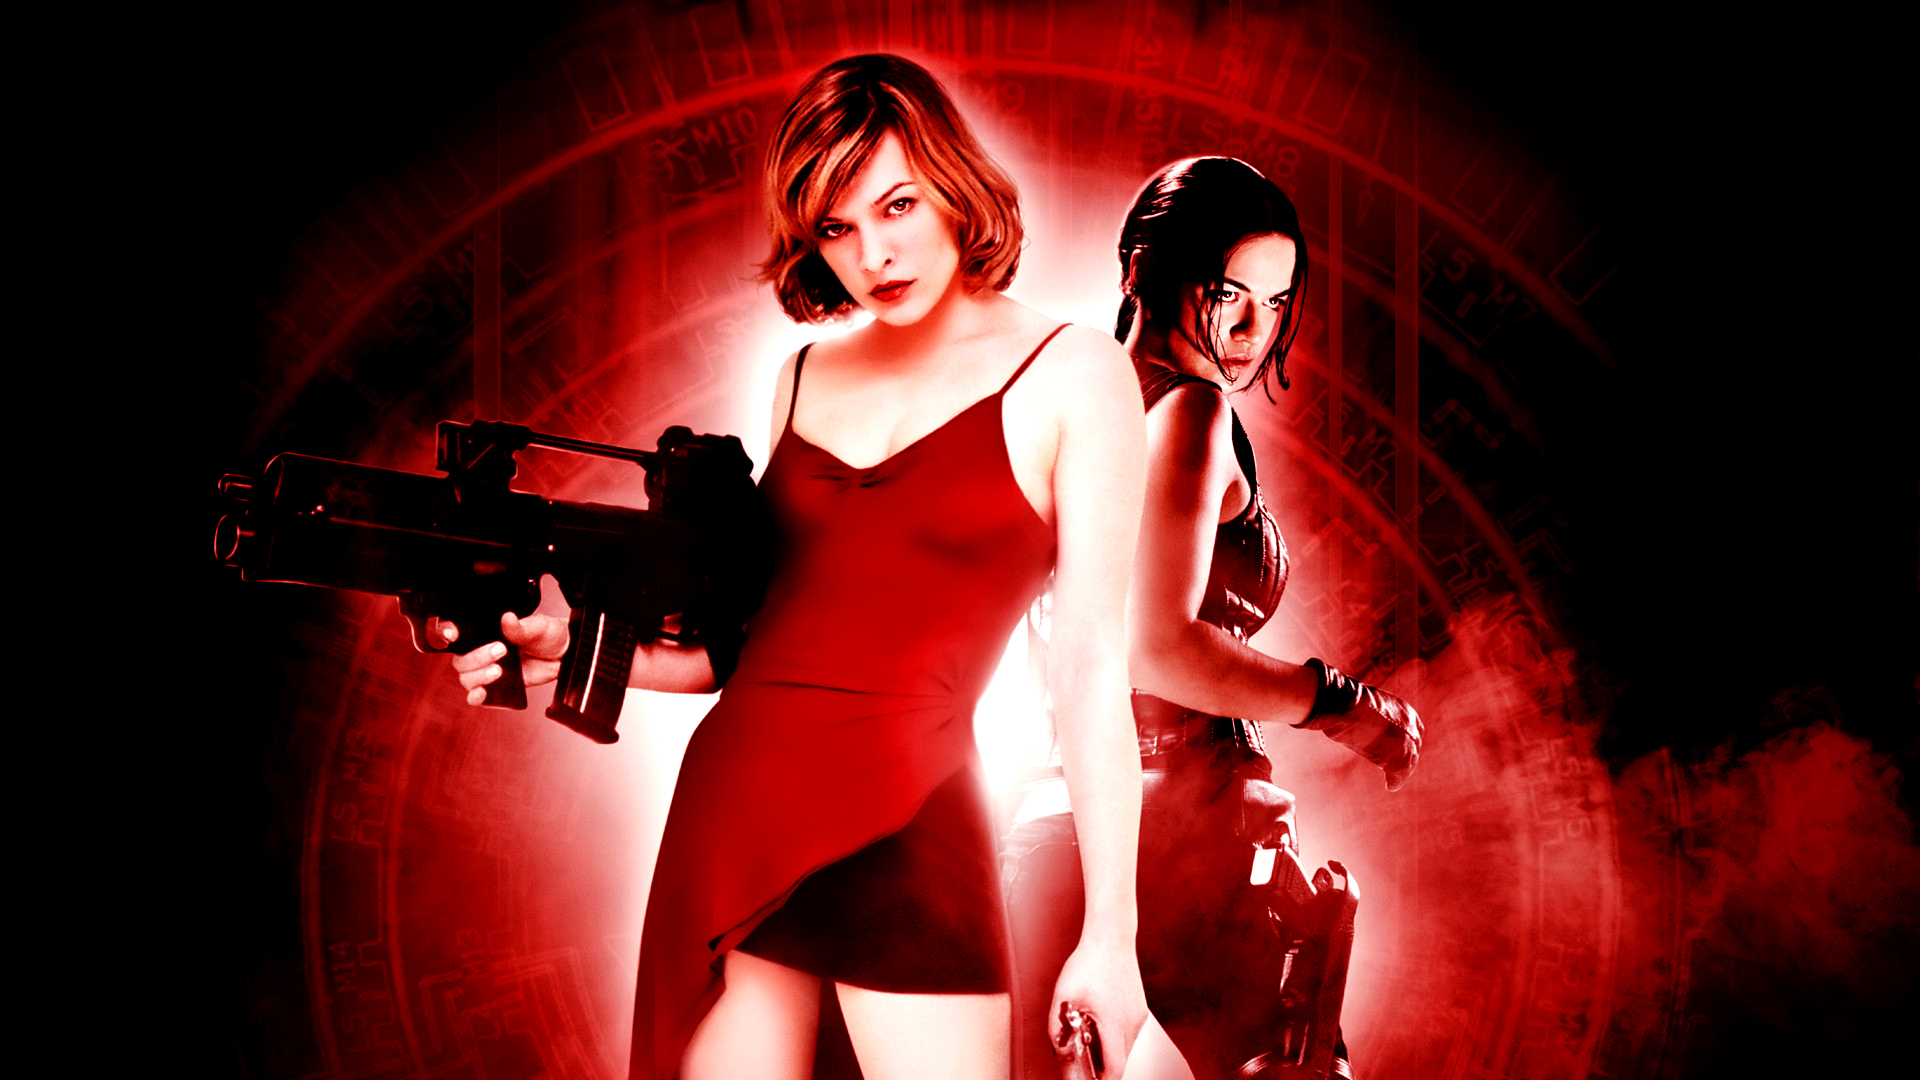 Resident Evil Wallpapers, Pictures, Images  Resident Evil W...